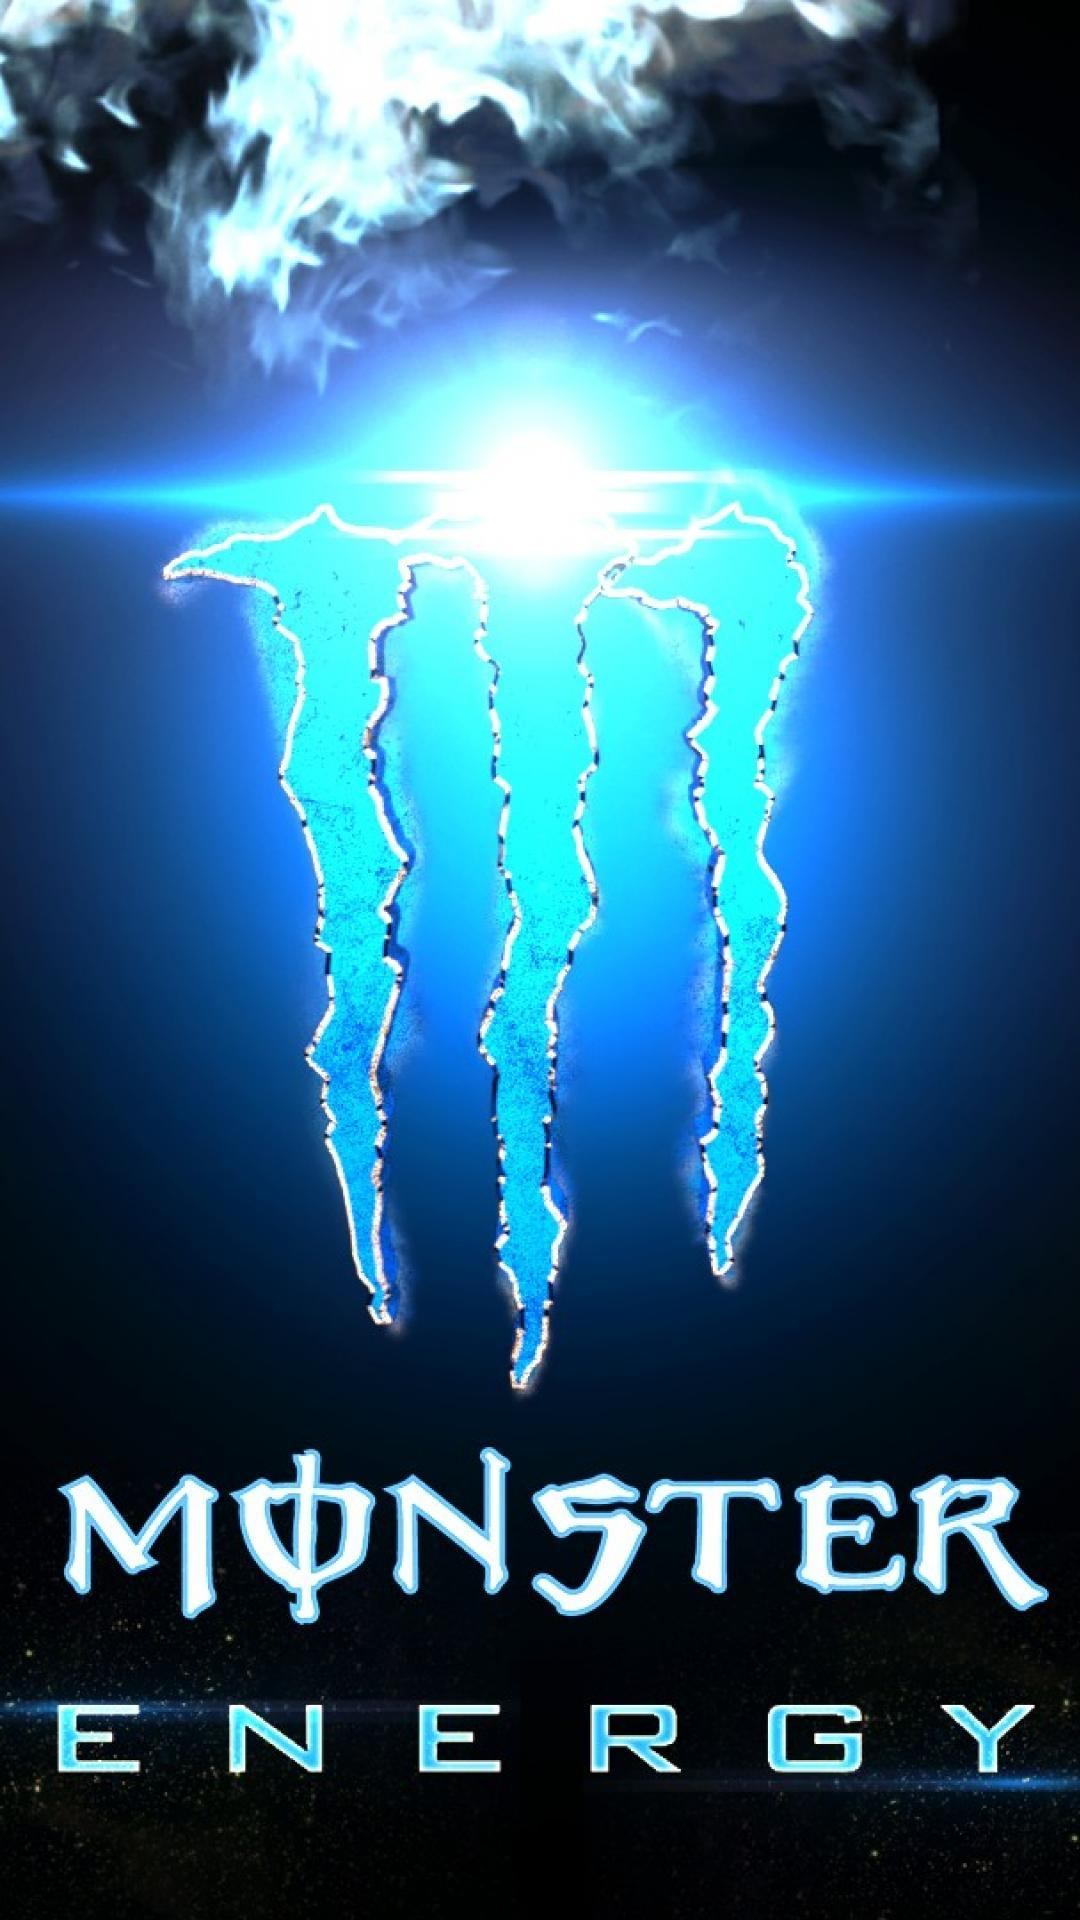 Monster Energy Wallpapers For IPhone